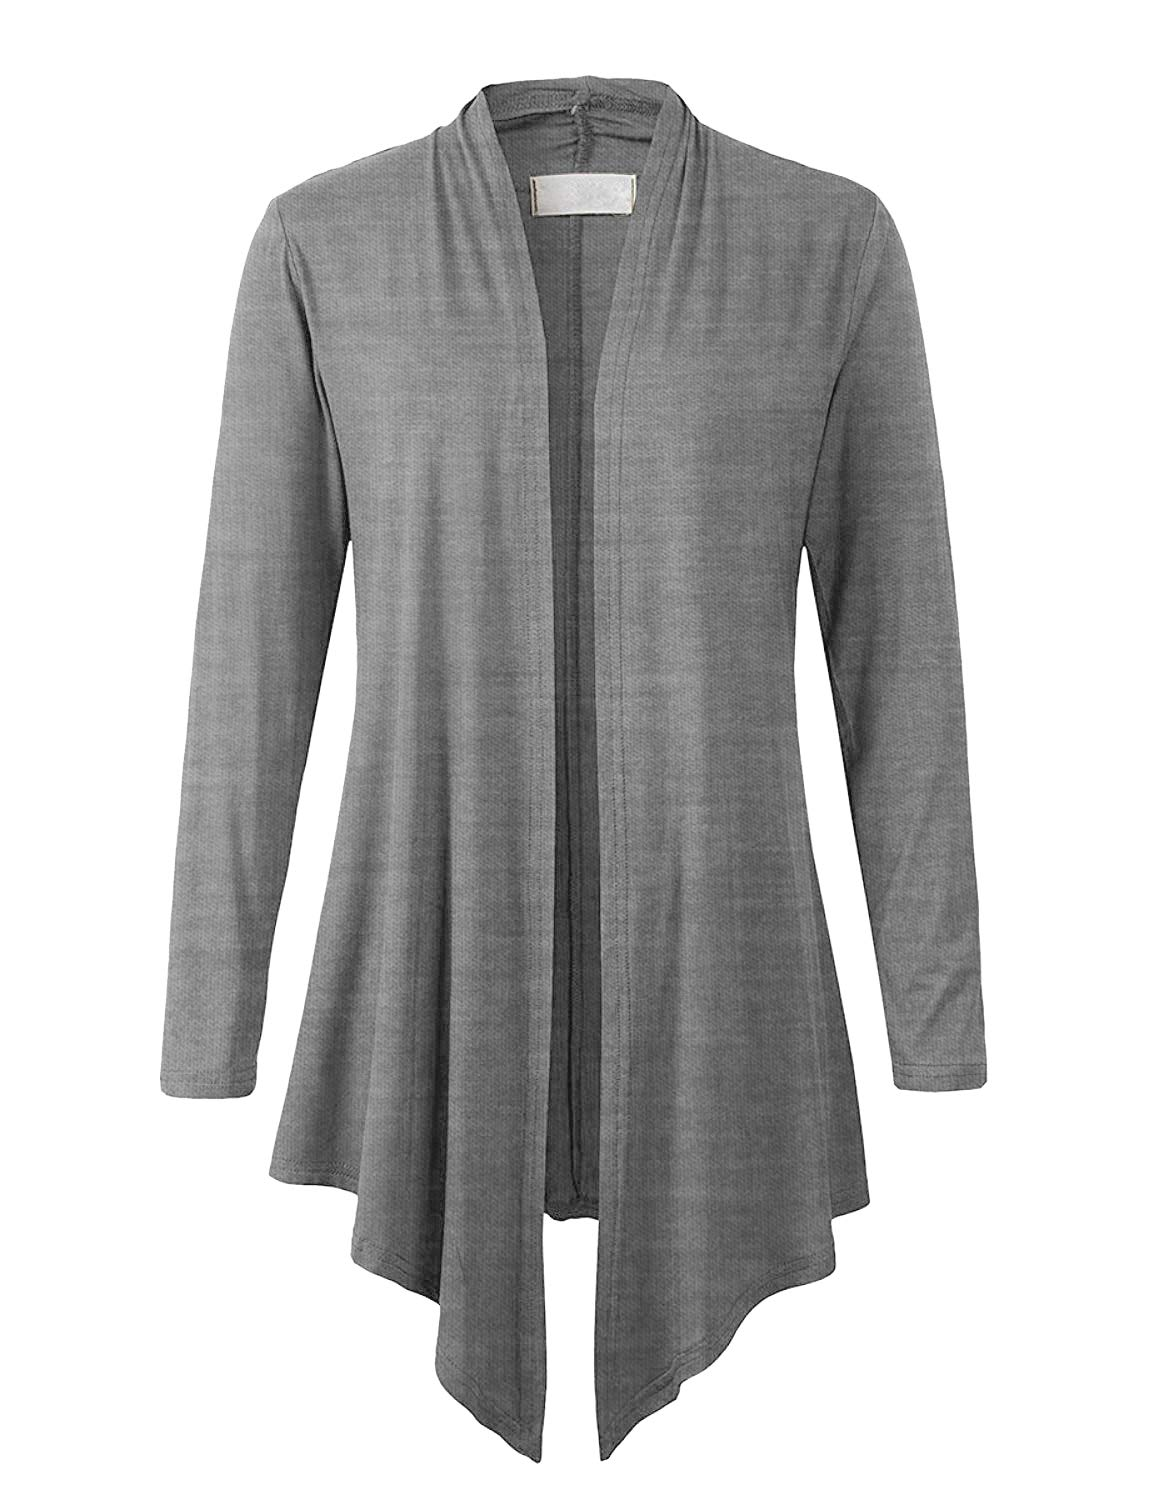 Eanklosco Women's Long Sleeve Drape Open-Front Cardigan Light Weight Irregular Hem Casual Tops (2XL, Heather Grey)